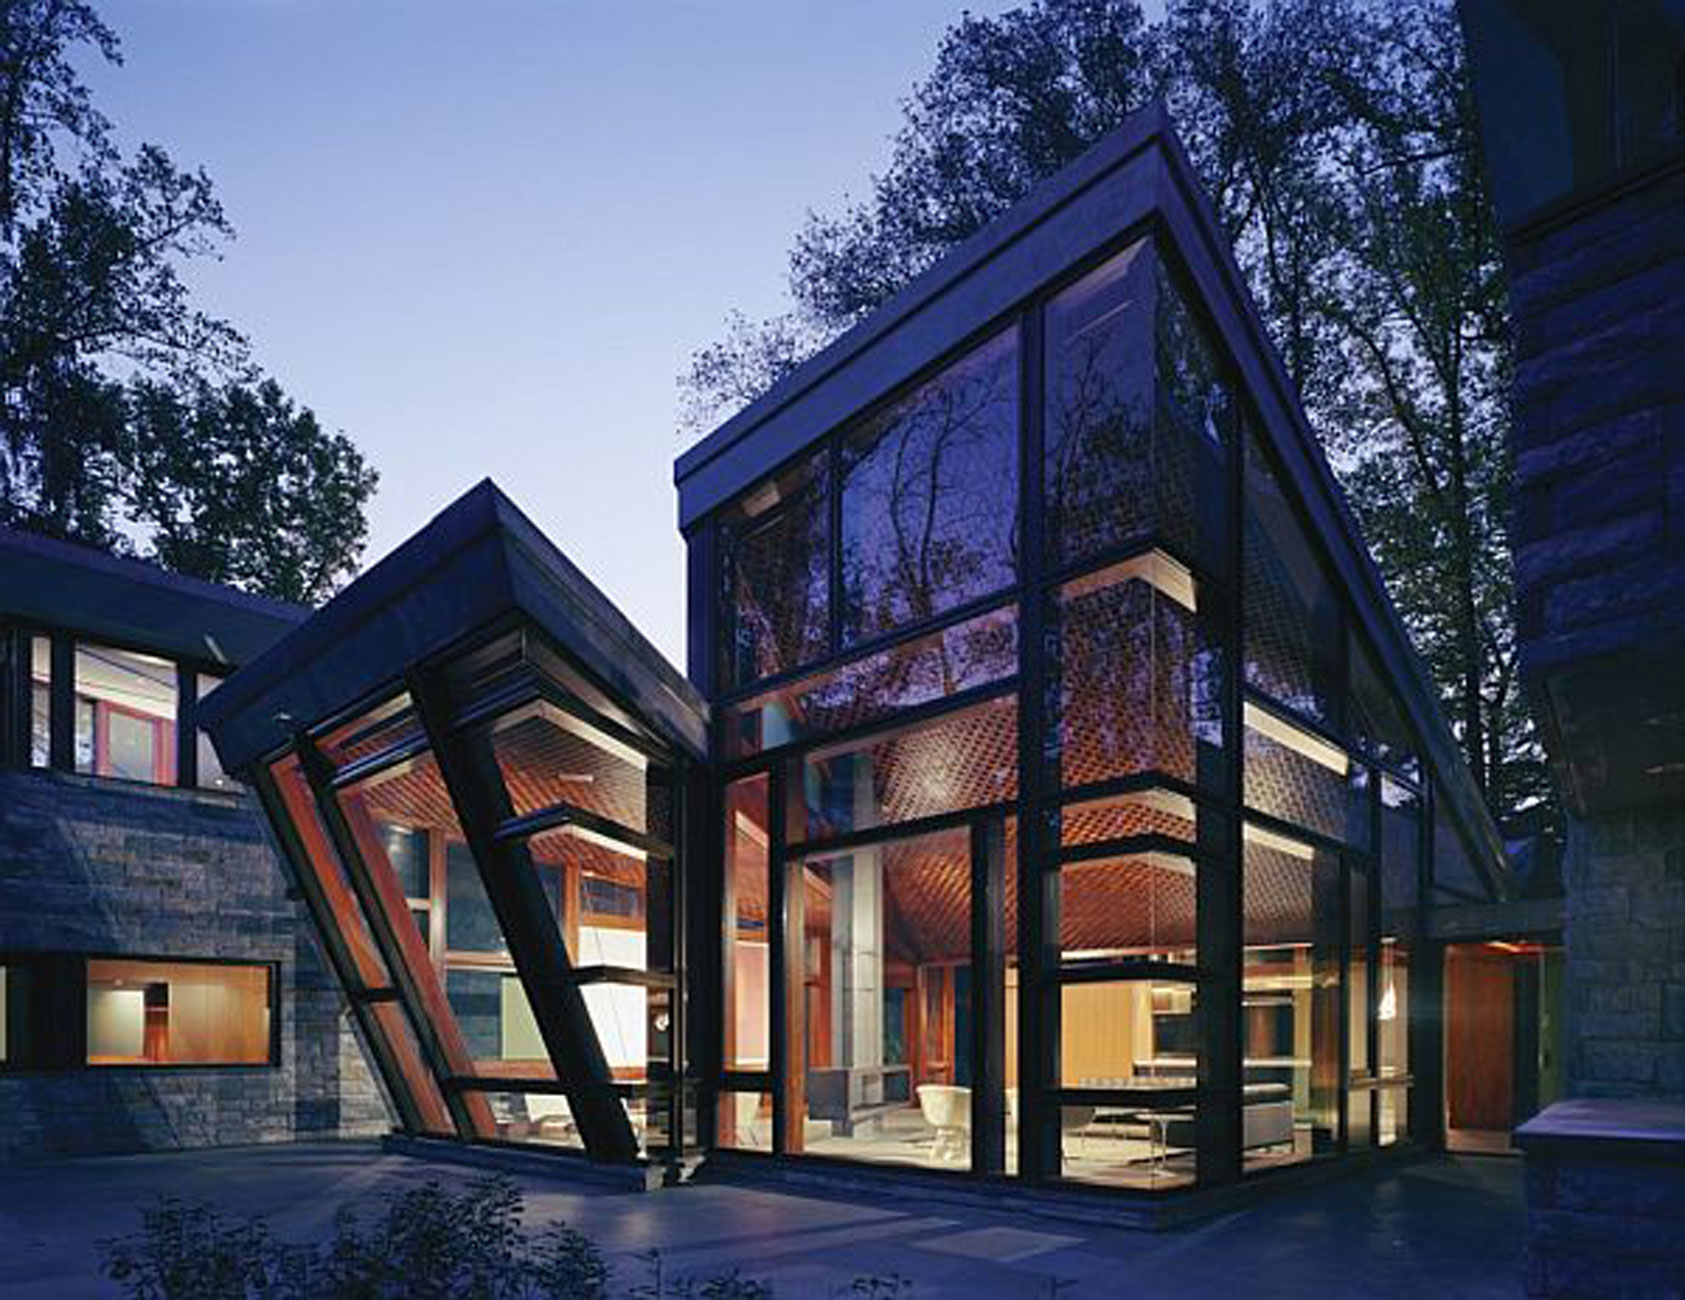 Sunday evening art gallery blog glass houses humoring for House structure design